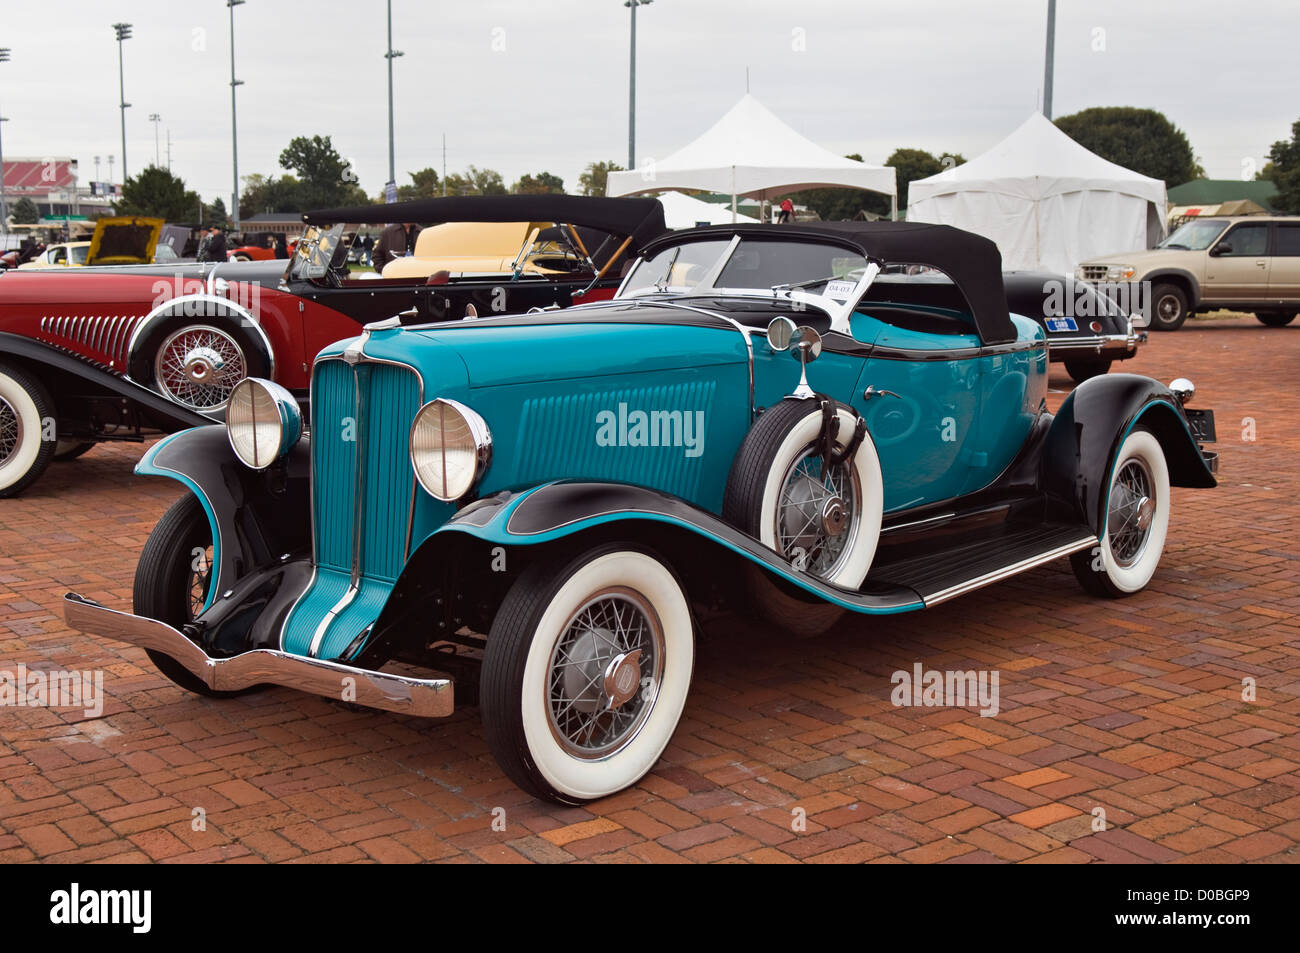 1932 Auburn 8-100 Speedster at the 2012 Concours d'Elegance at Churhill Downs in Louisville, Kentucky - Stock Image